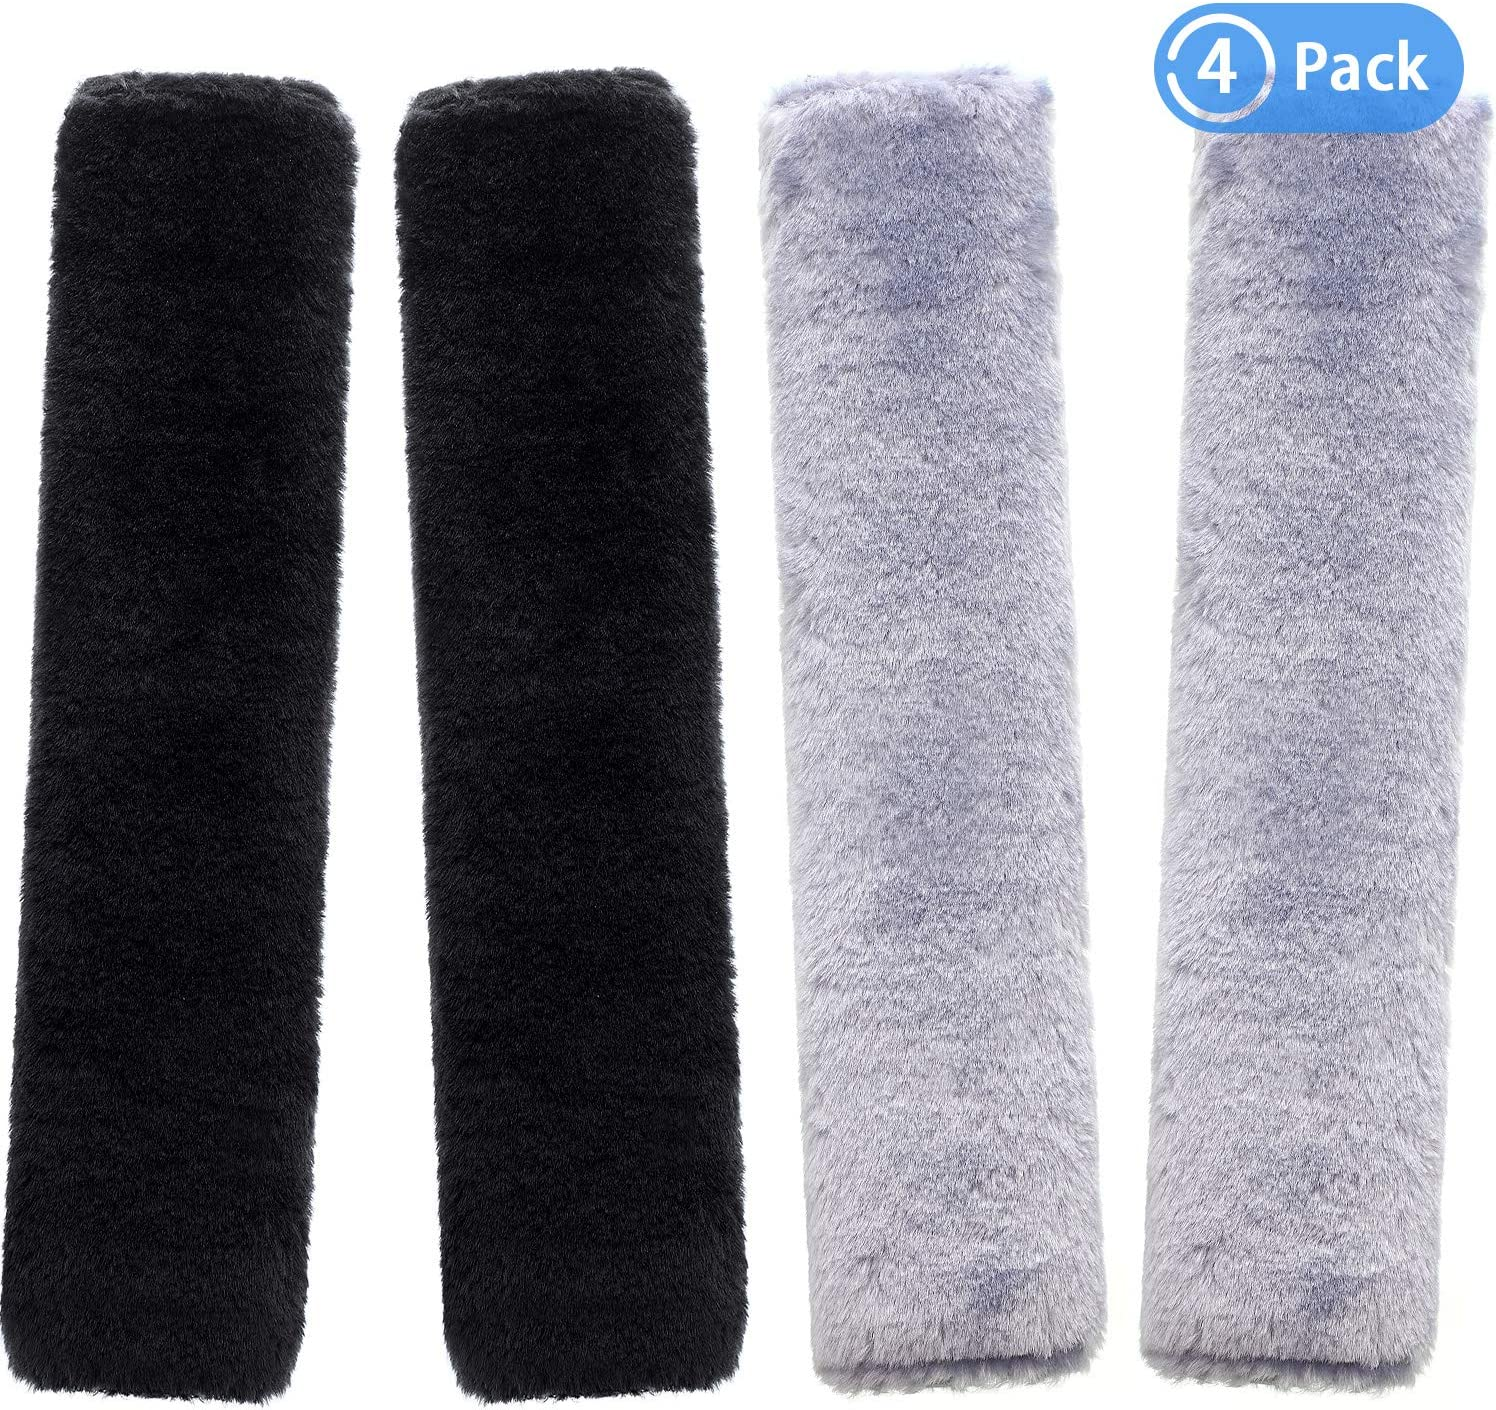 4 Pieces Seat Belt Pads Soft Faux Sheepskin Car Seat Belt Pads Cover Suitable with Car Seatbelt and Backpack Straps 2 Black and 2 Gray Seatbelt Protector for Kids Adults